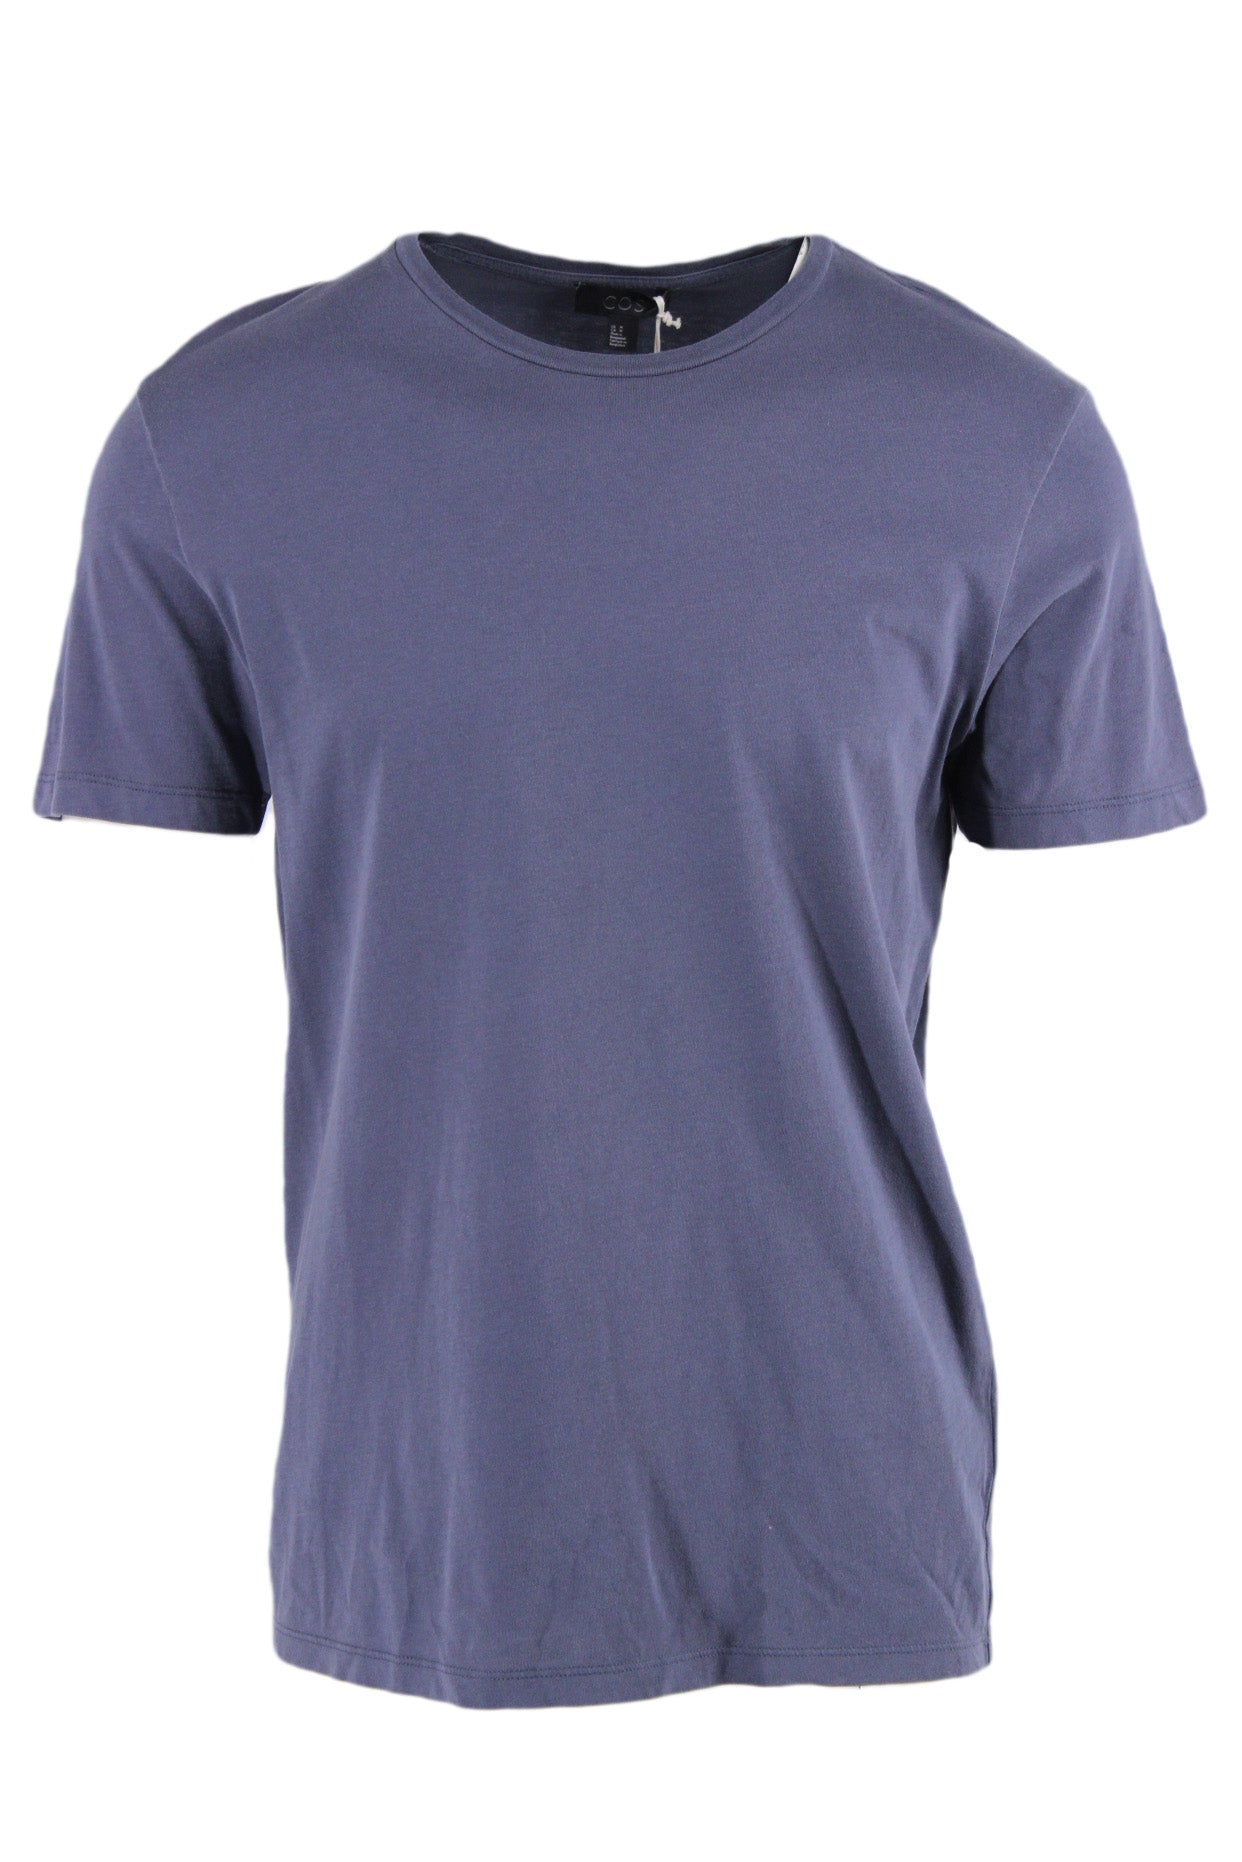 cos blue tinted gray short sleeve tee. features a ribbed round neckline & a regular cut.